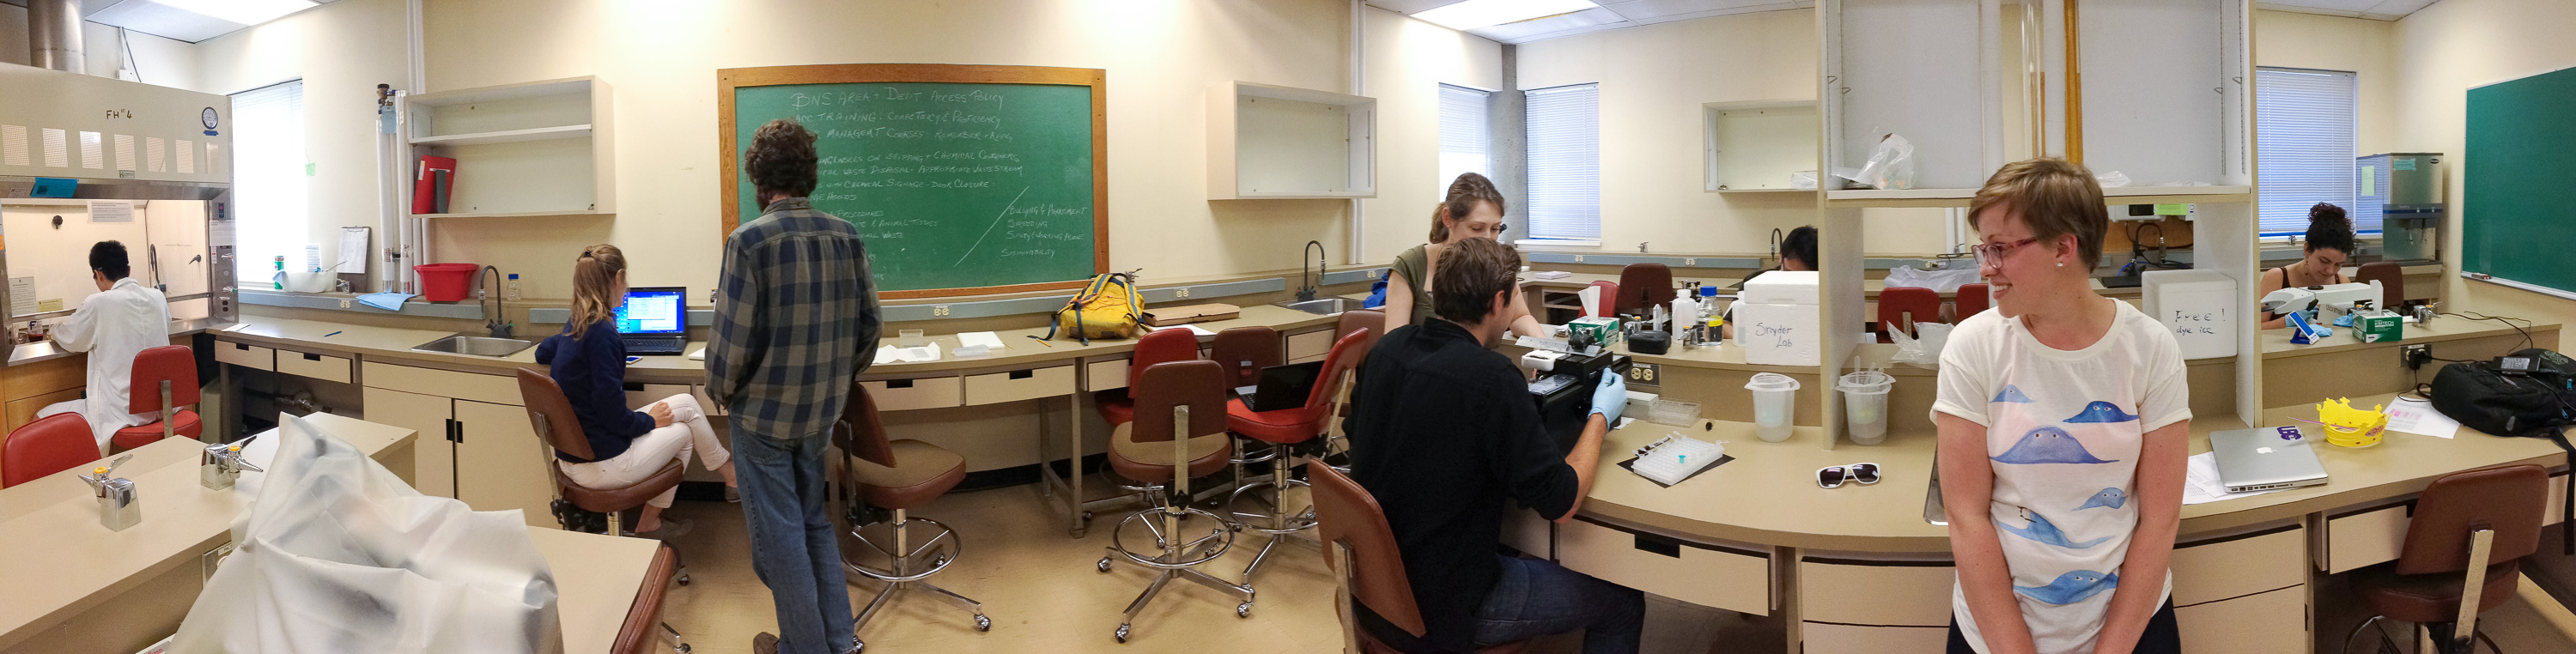 snyder lab 07092014 pano